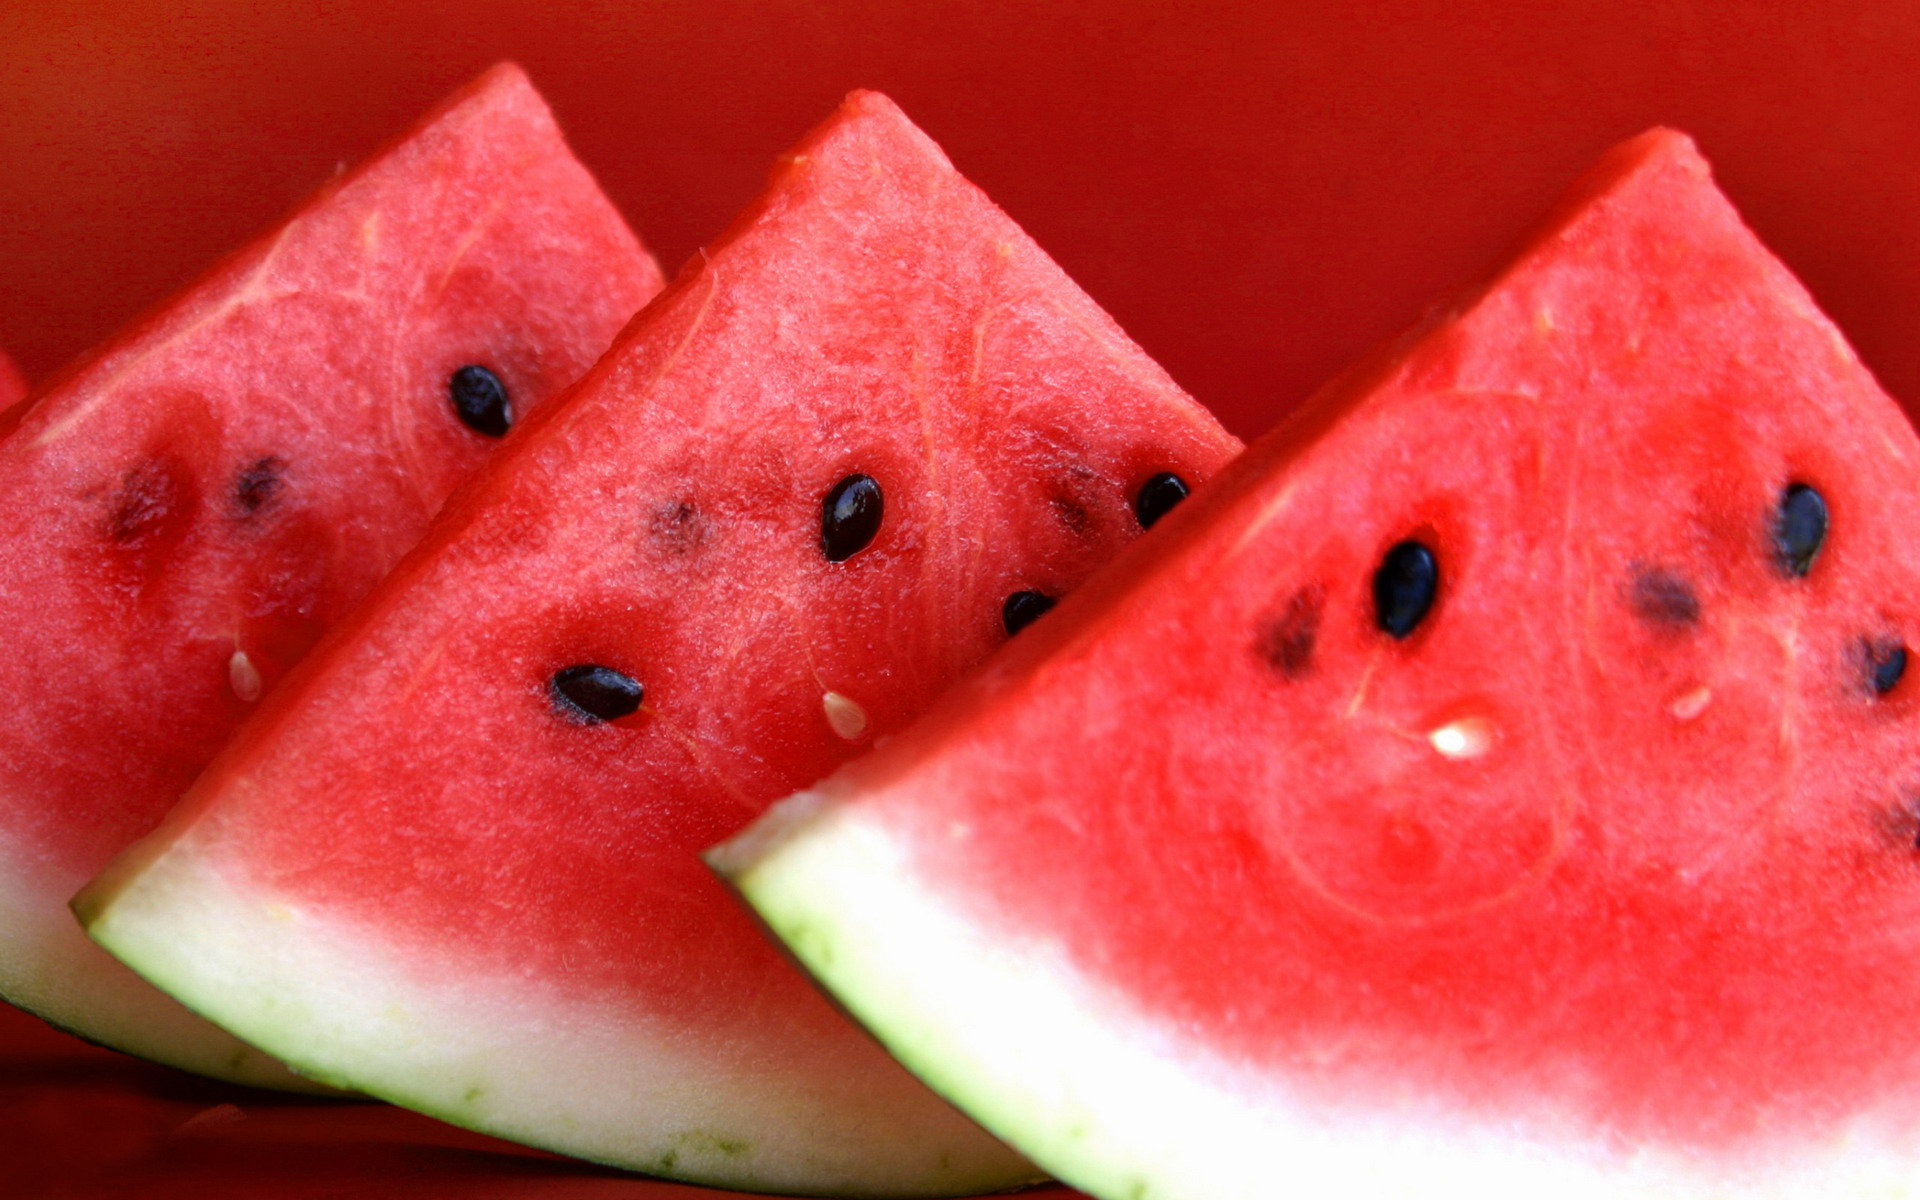 images of water melon